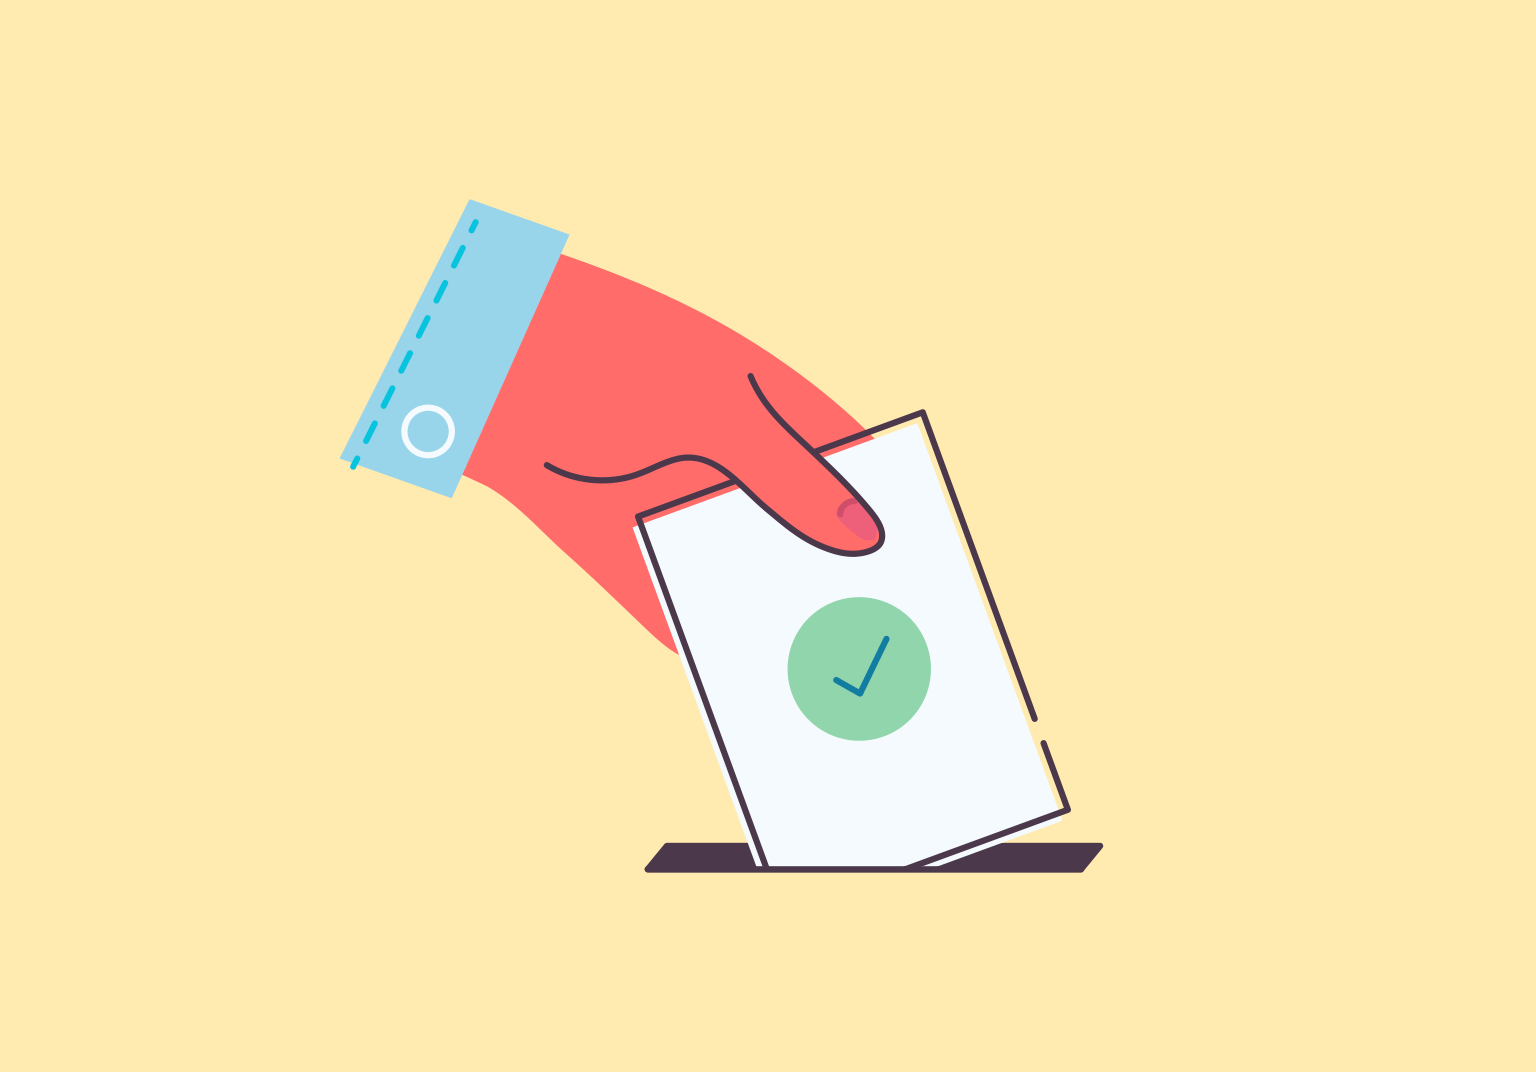 An illustration of a hand putting a ballot with a green checkmark in a slot